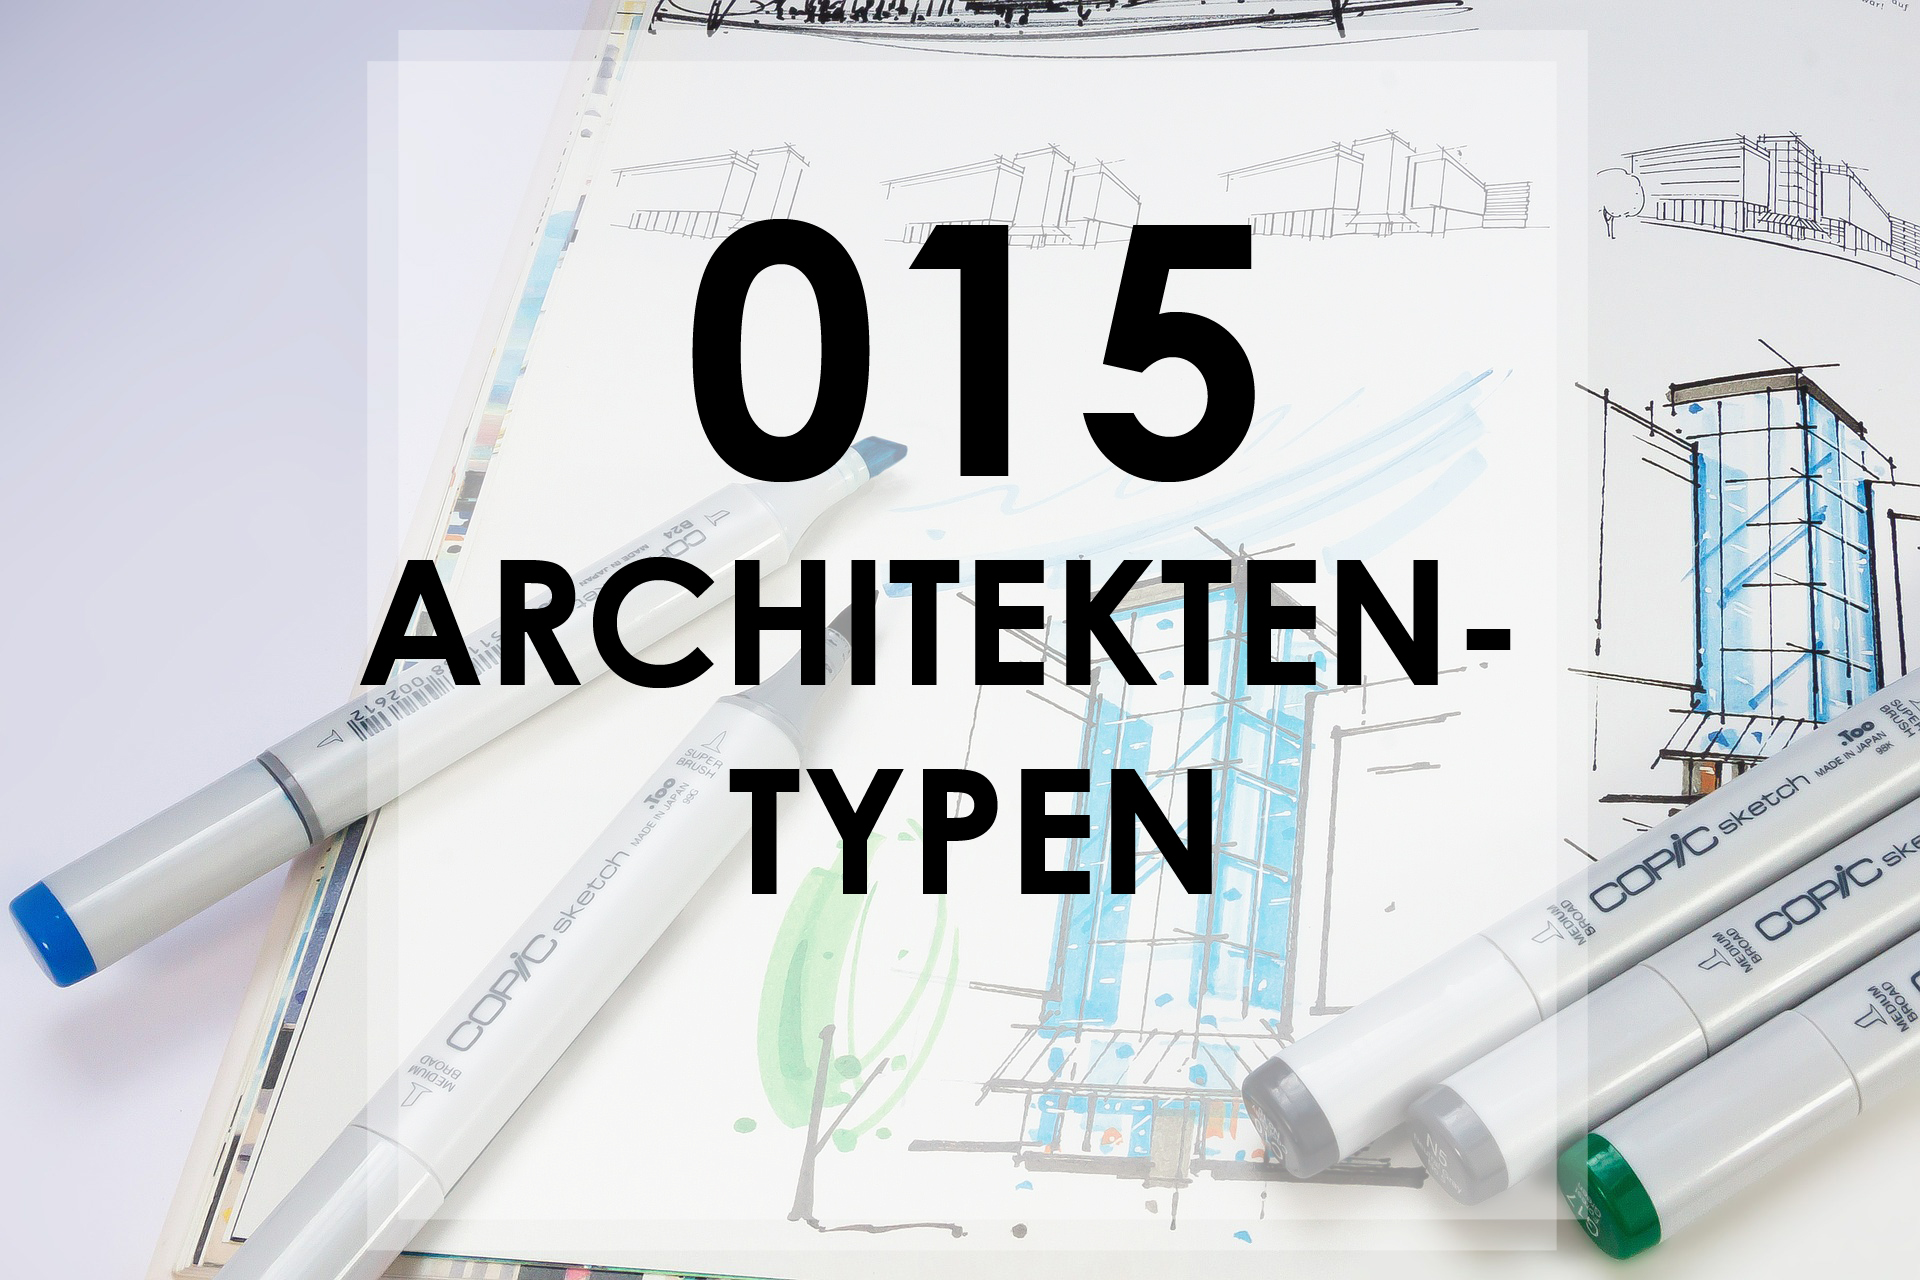 Architektentypen